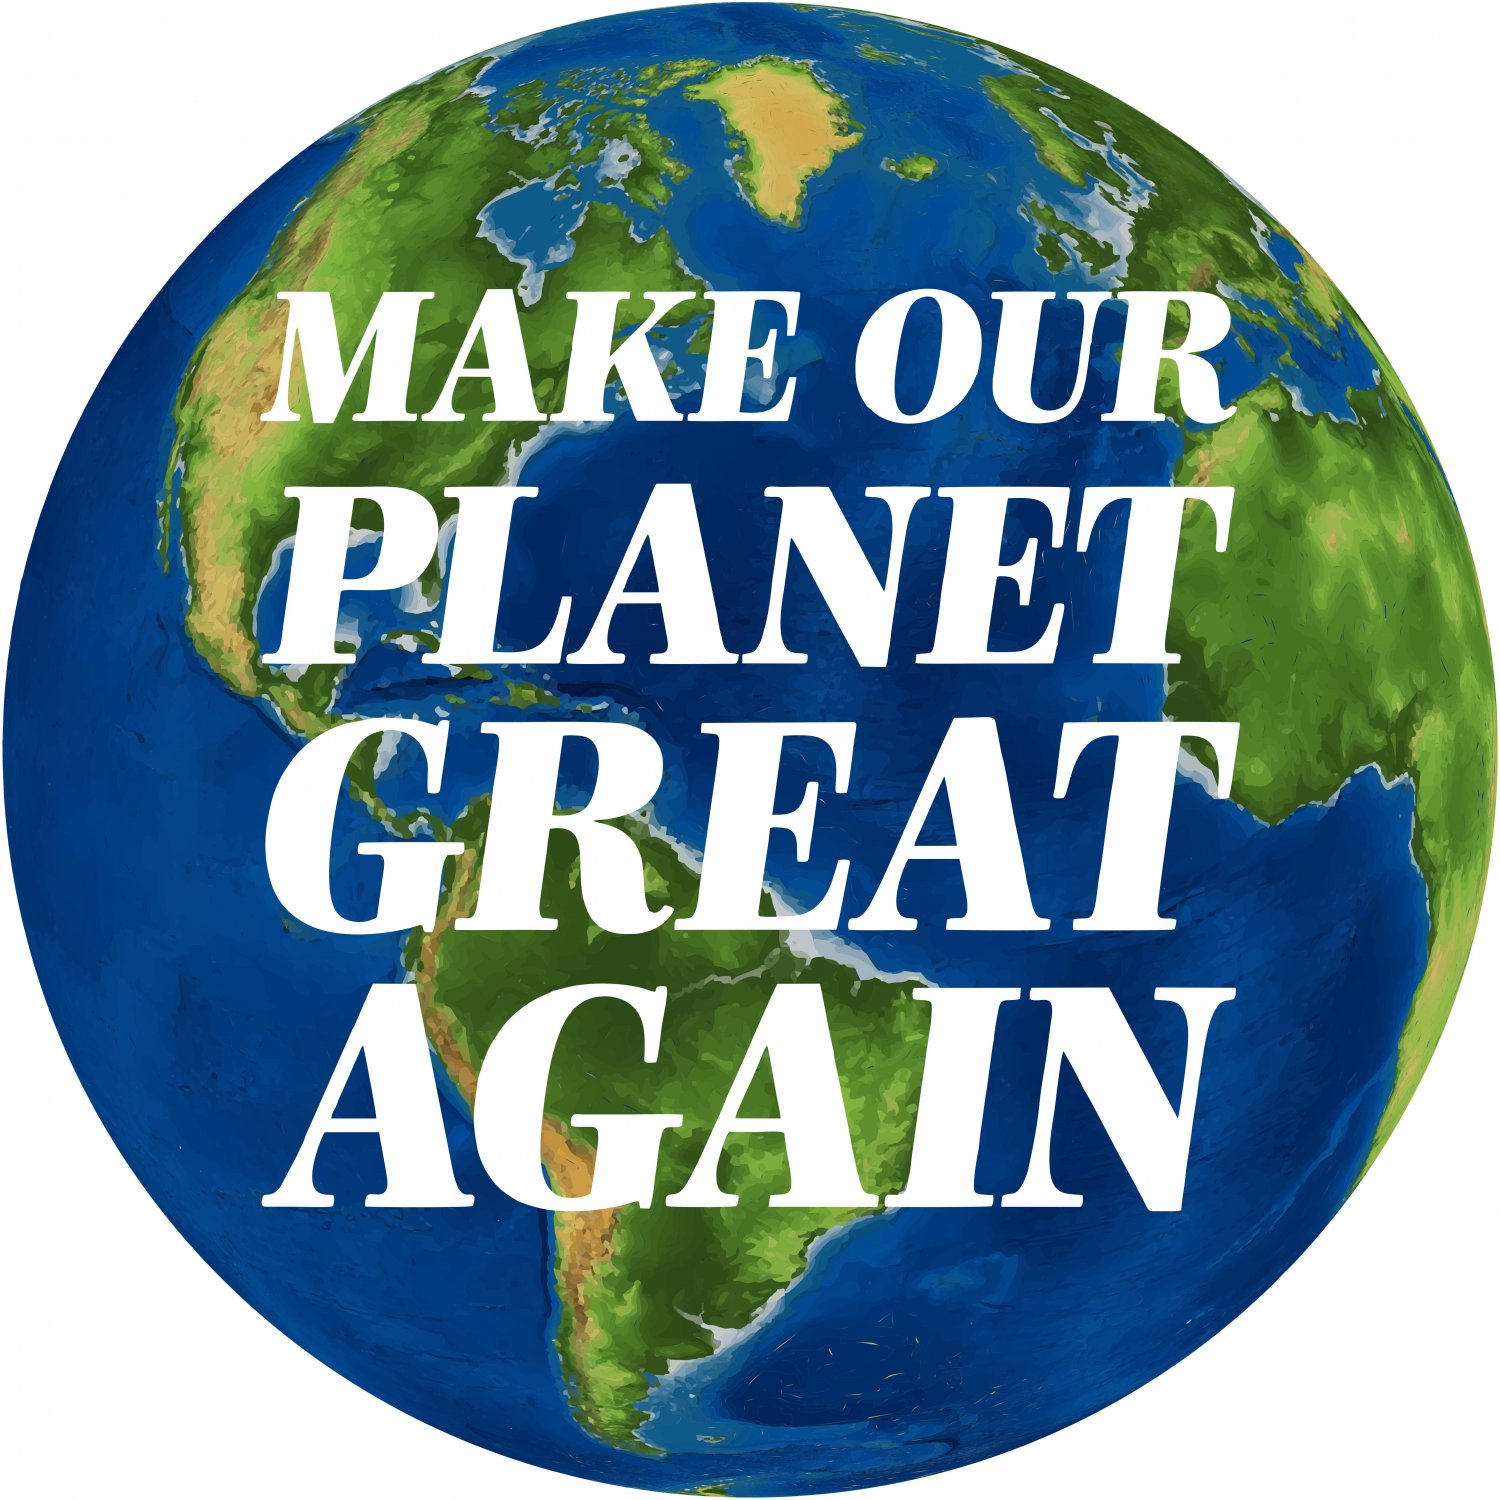 « MAKE OUR PLANET GREAT AGAIN – MASTER KAZAKHSTAN »